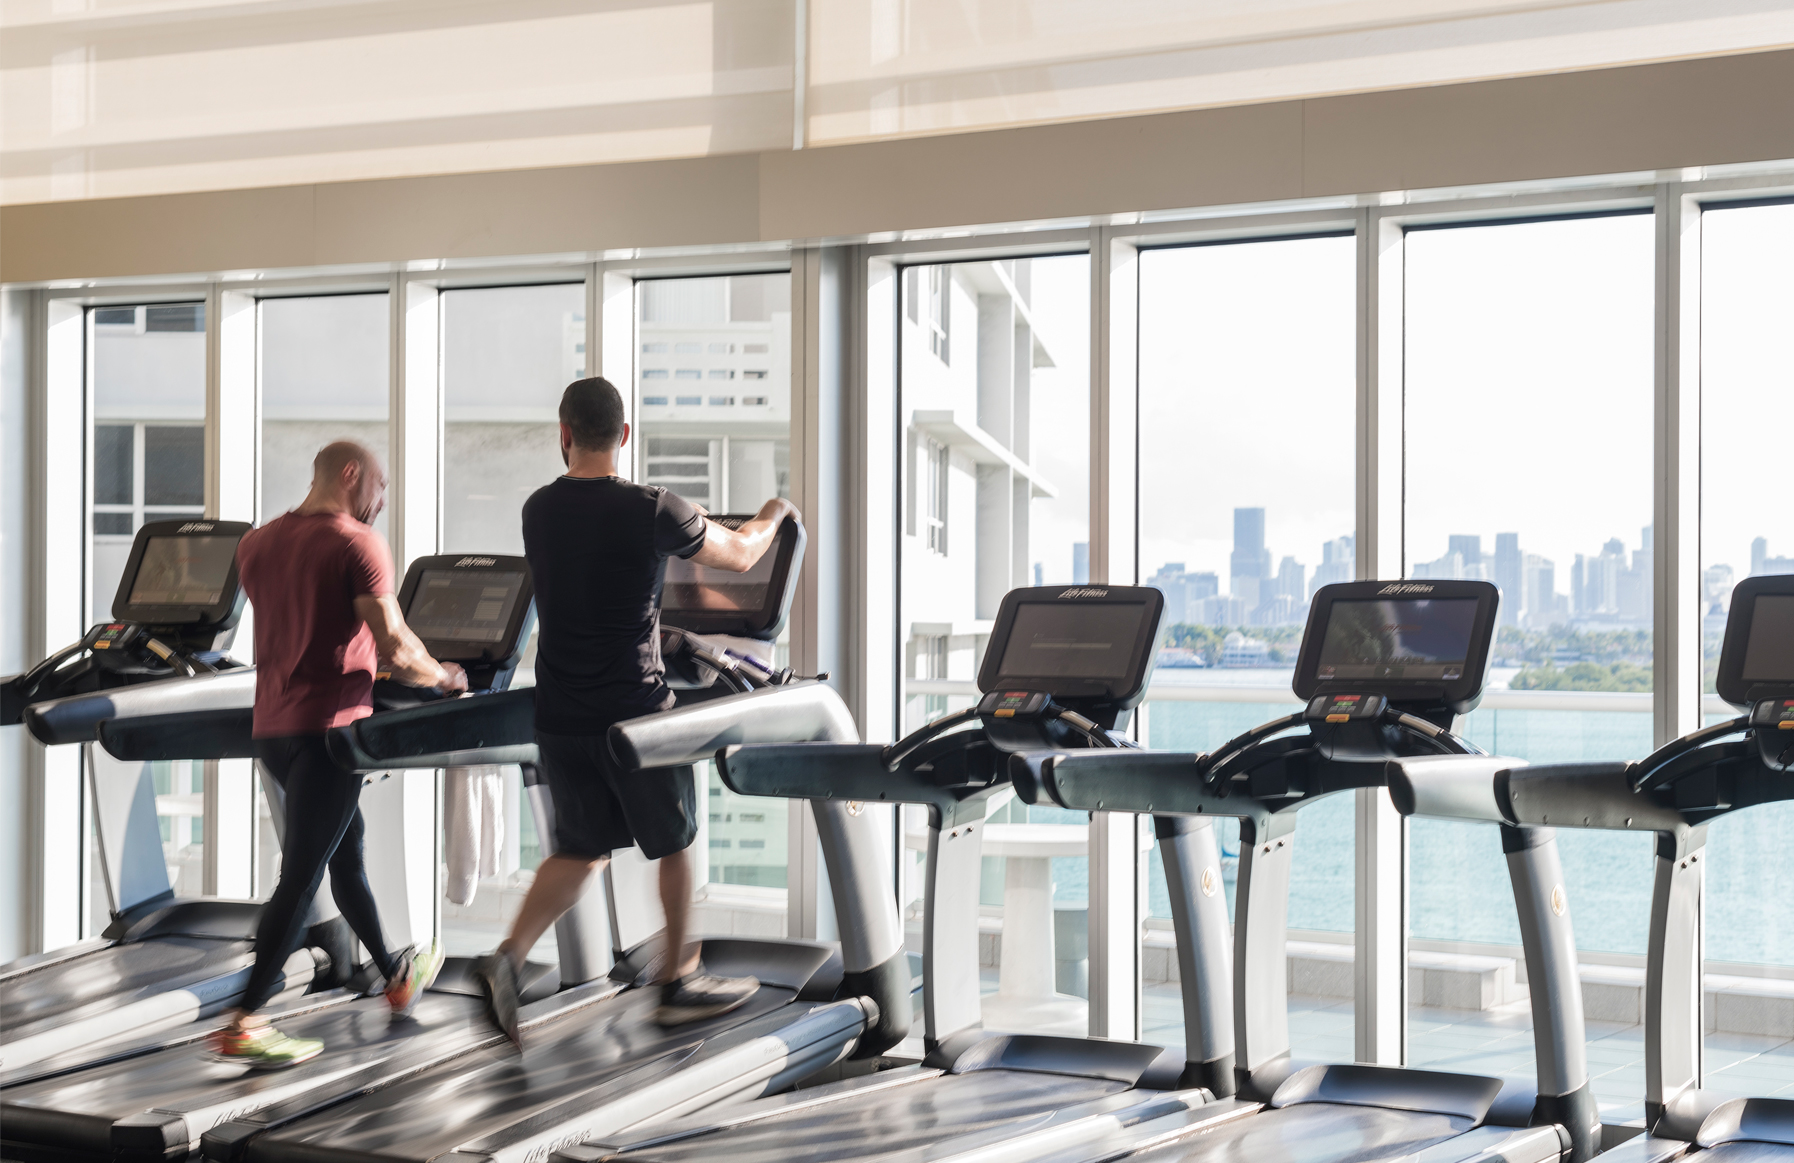 Treadmills - Flamingo Point South - Miami FL